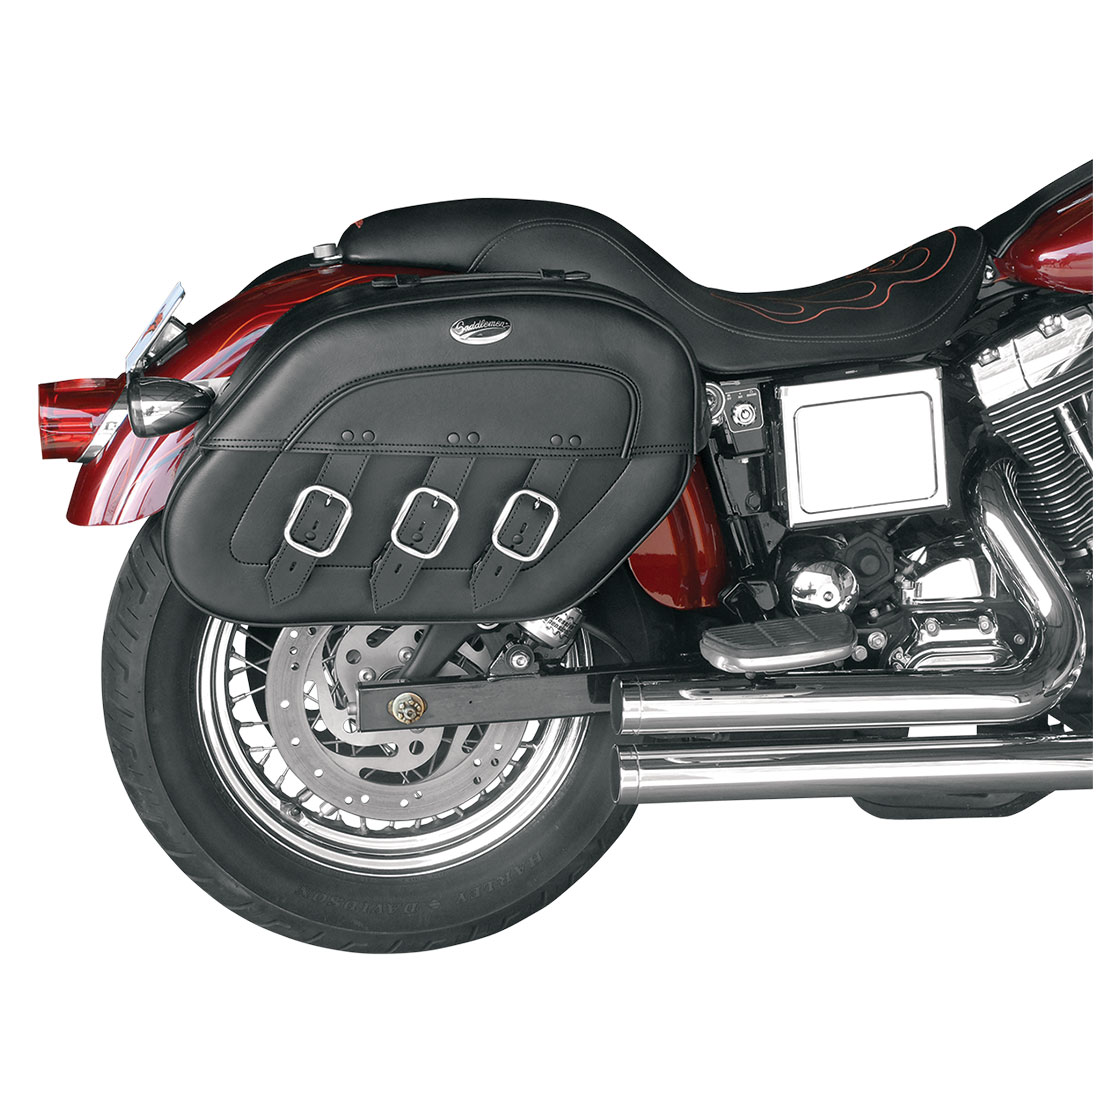 Saddlemen Drifter S4 Rigid-Mount Quick-Detach Slant Saddlebags for H-D  Motorcycles - 35010232